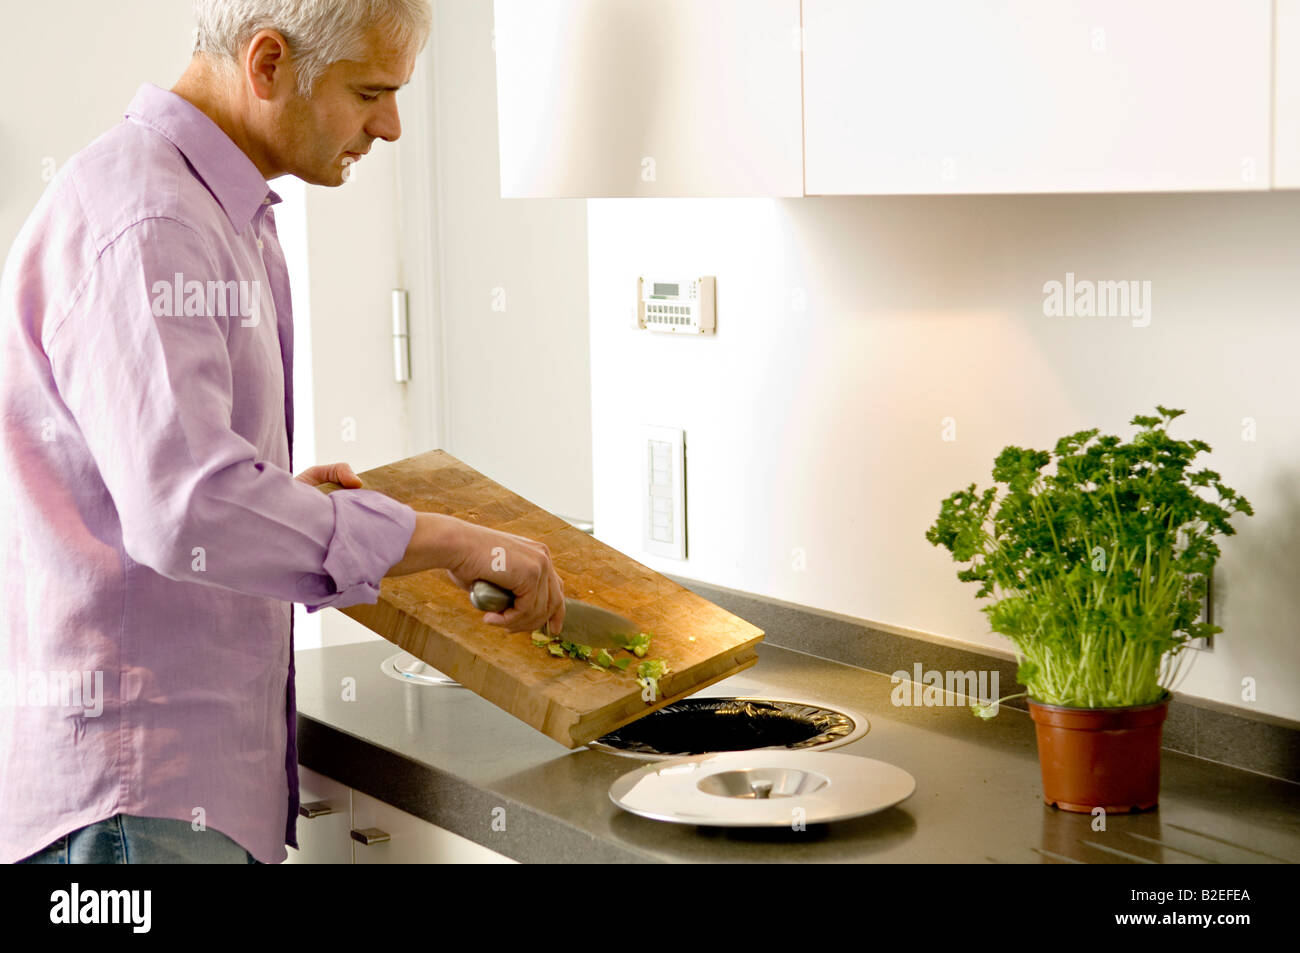 Mature man scraping vegetables pieces into a garbage bin - Stock Image